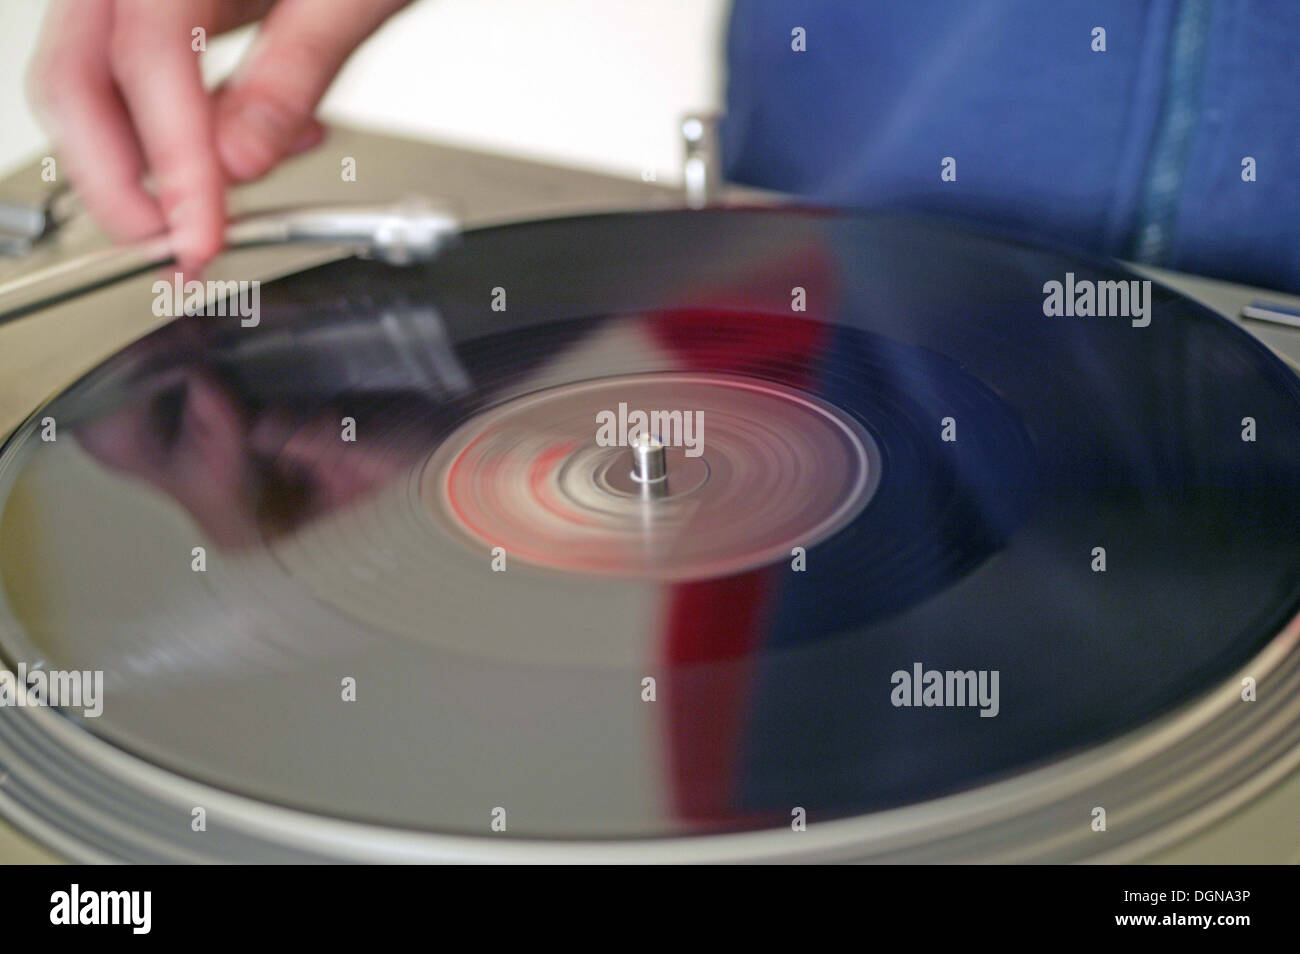 A DJ playing a record on a turntable, close up - Stock Image